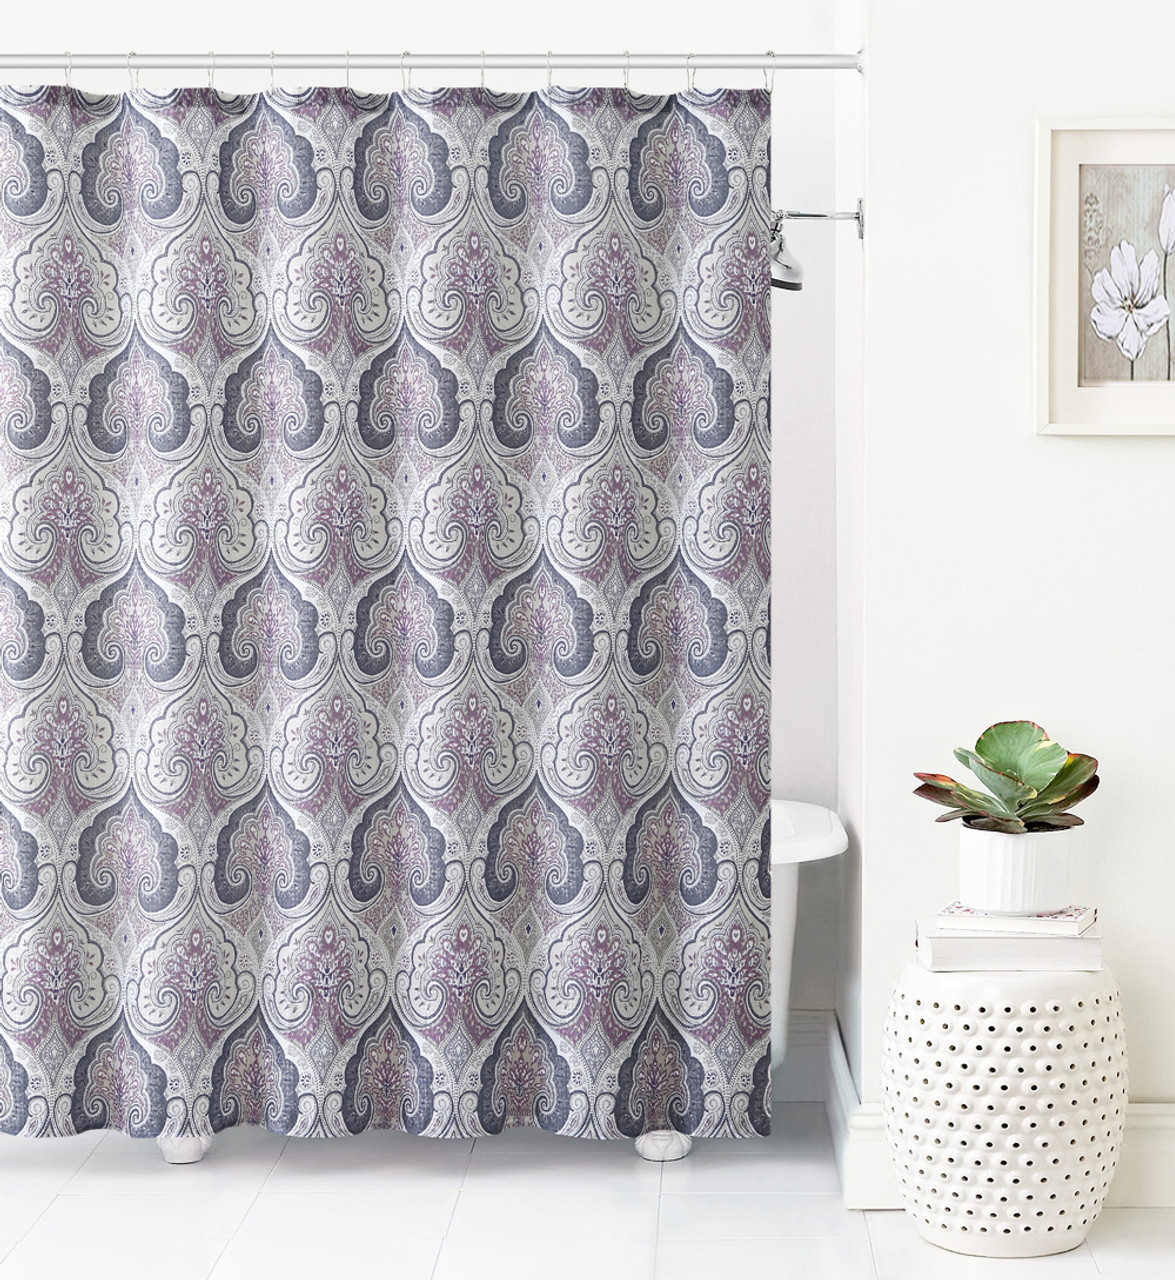 jacquard fabric shower curtain purple gray and taupe ikat moroccan design